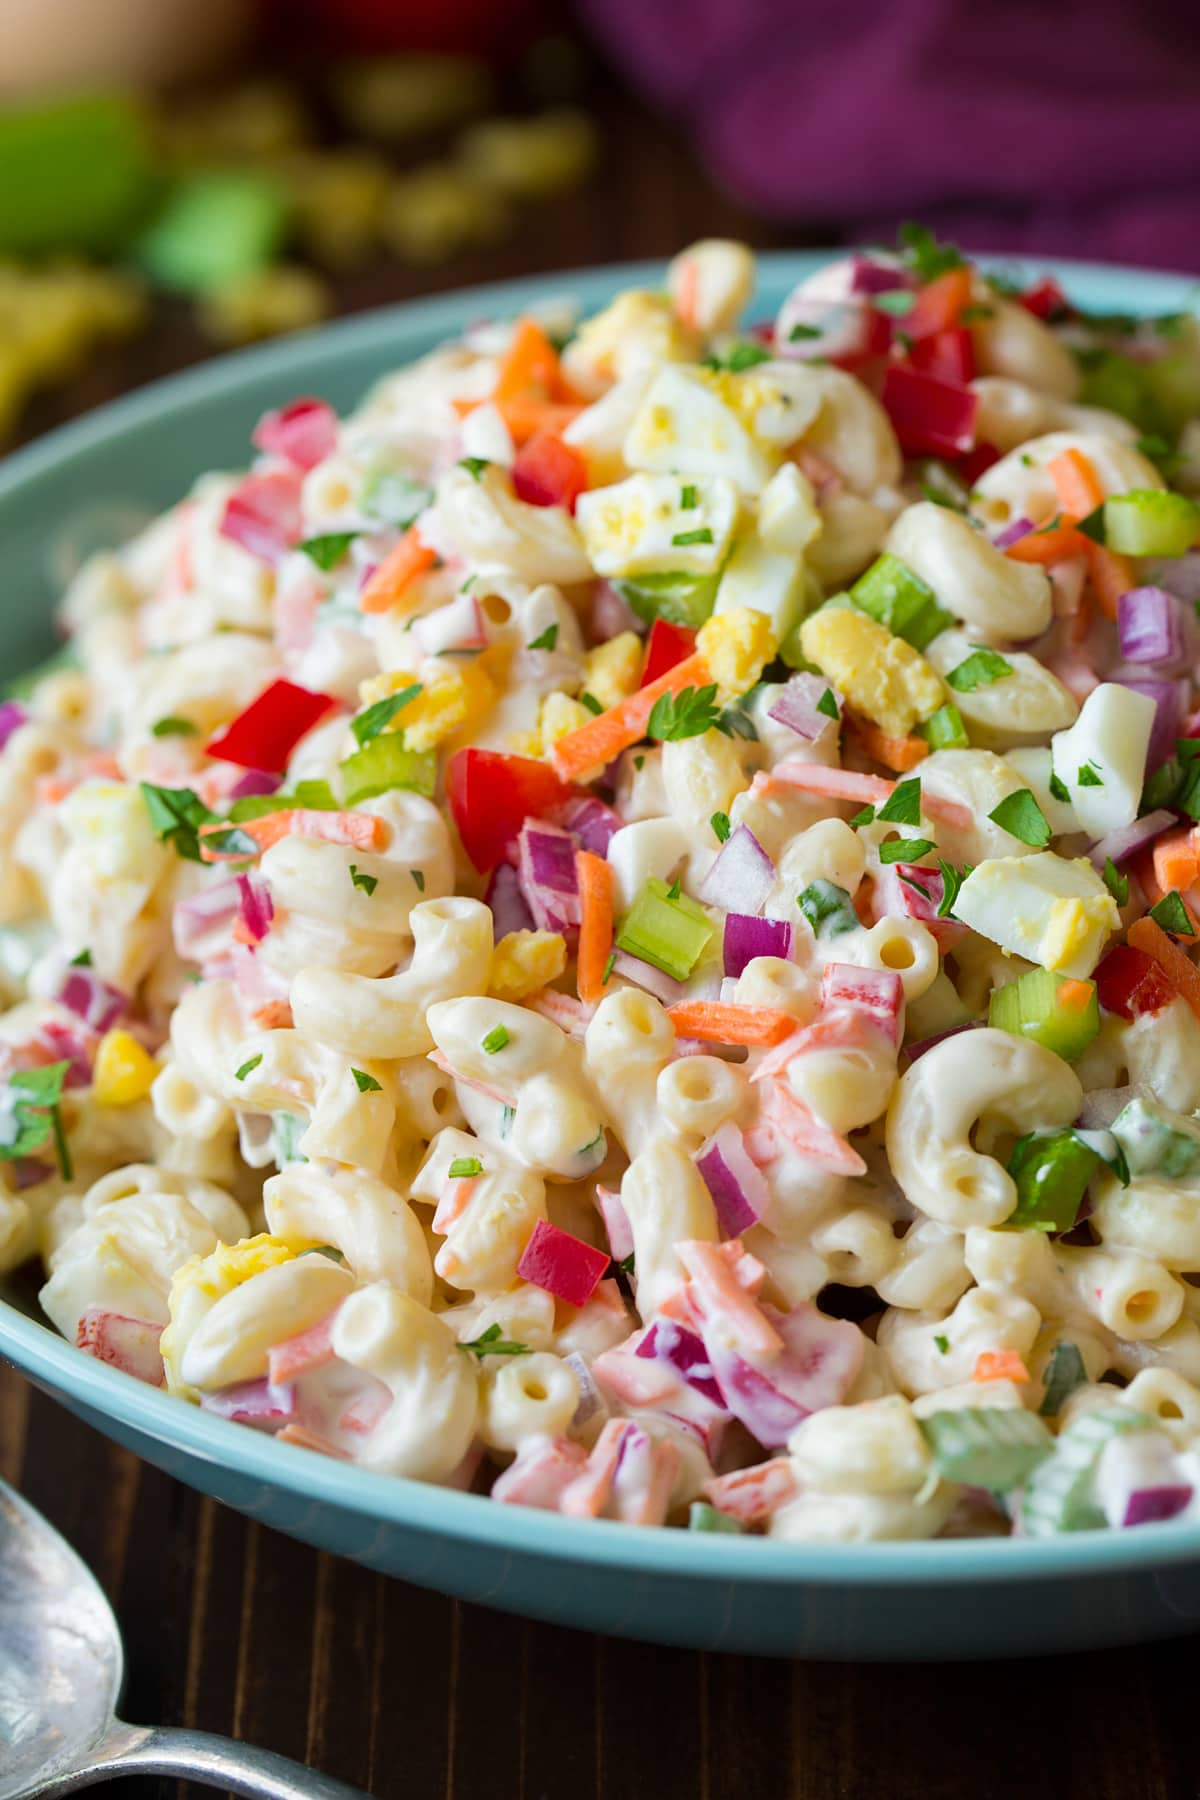 Close up side angle view of macaroni salad in a light blue bowl.